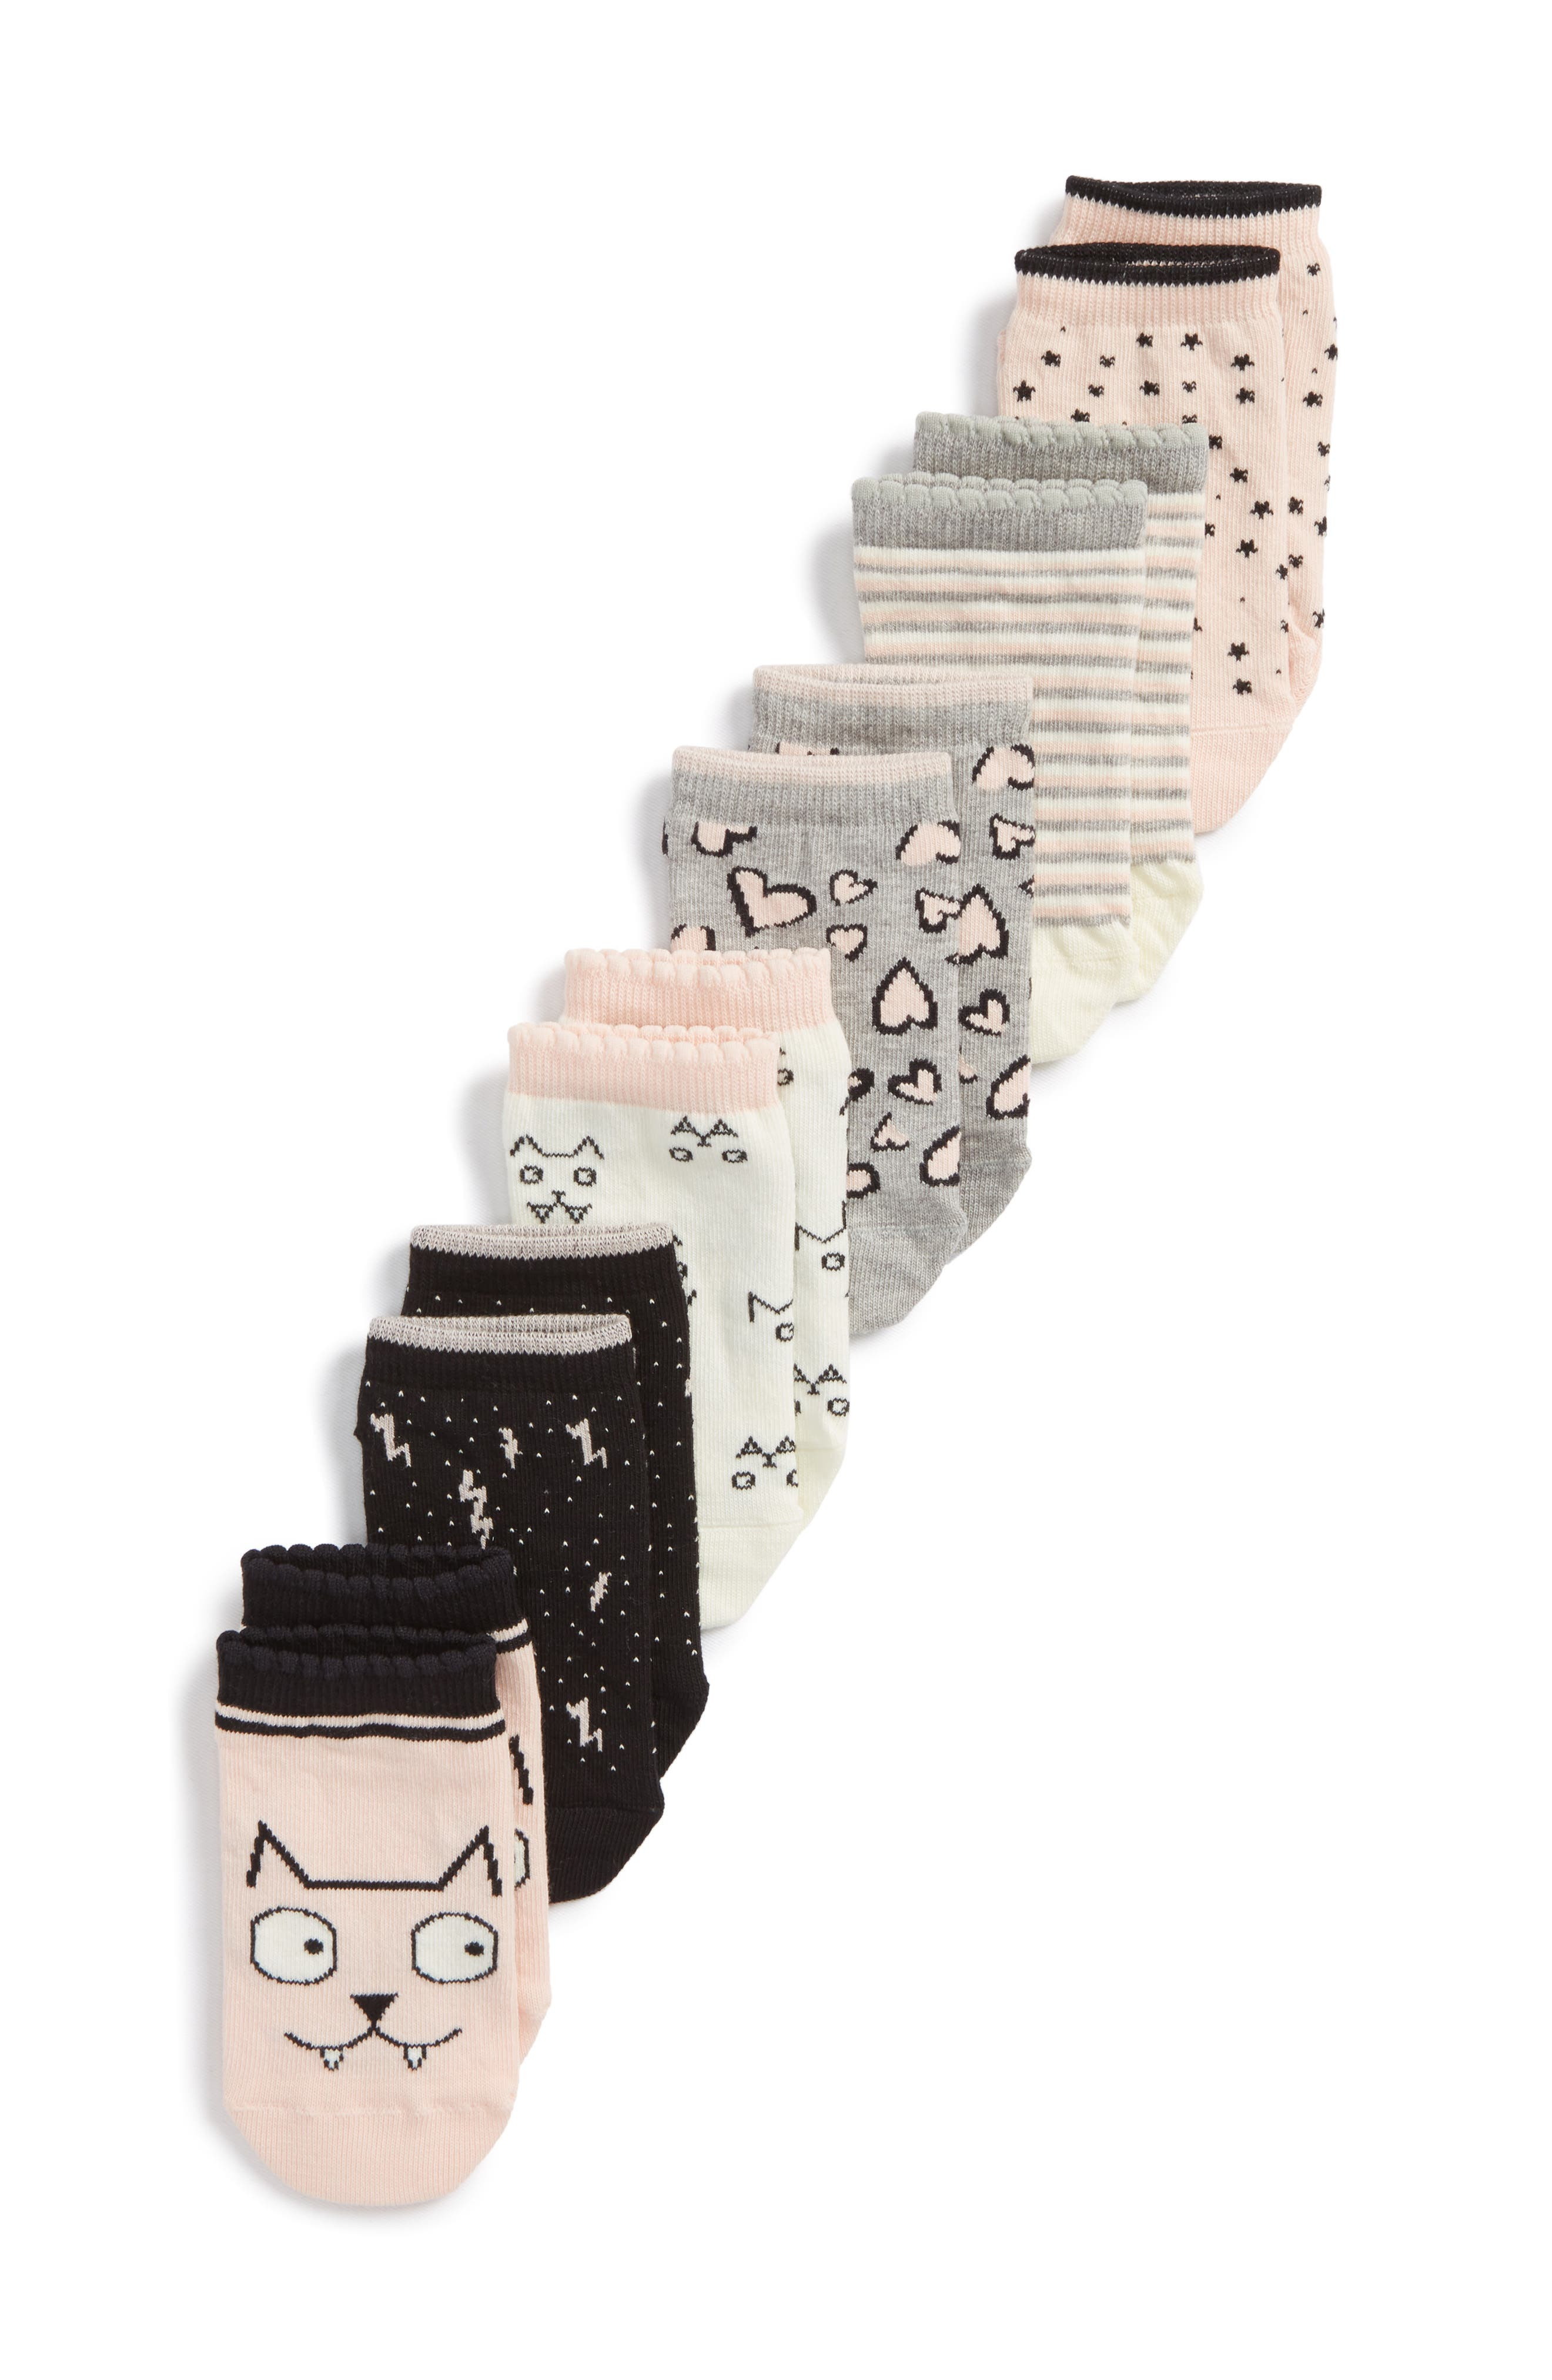 Kitty 6-Pack Assorted Low Cut Socks,                             Main thumbnail 1, color,                             680